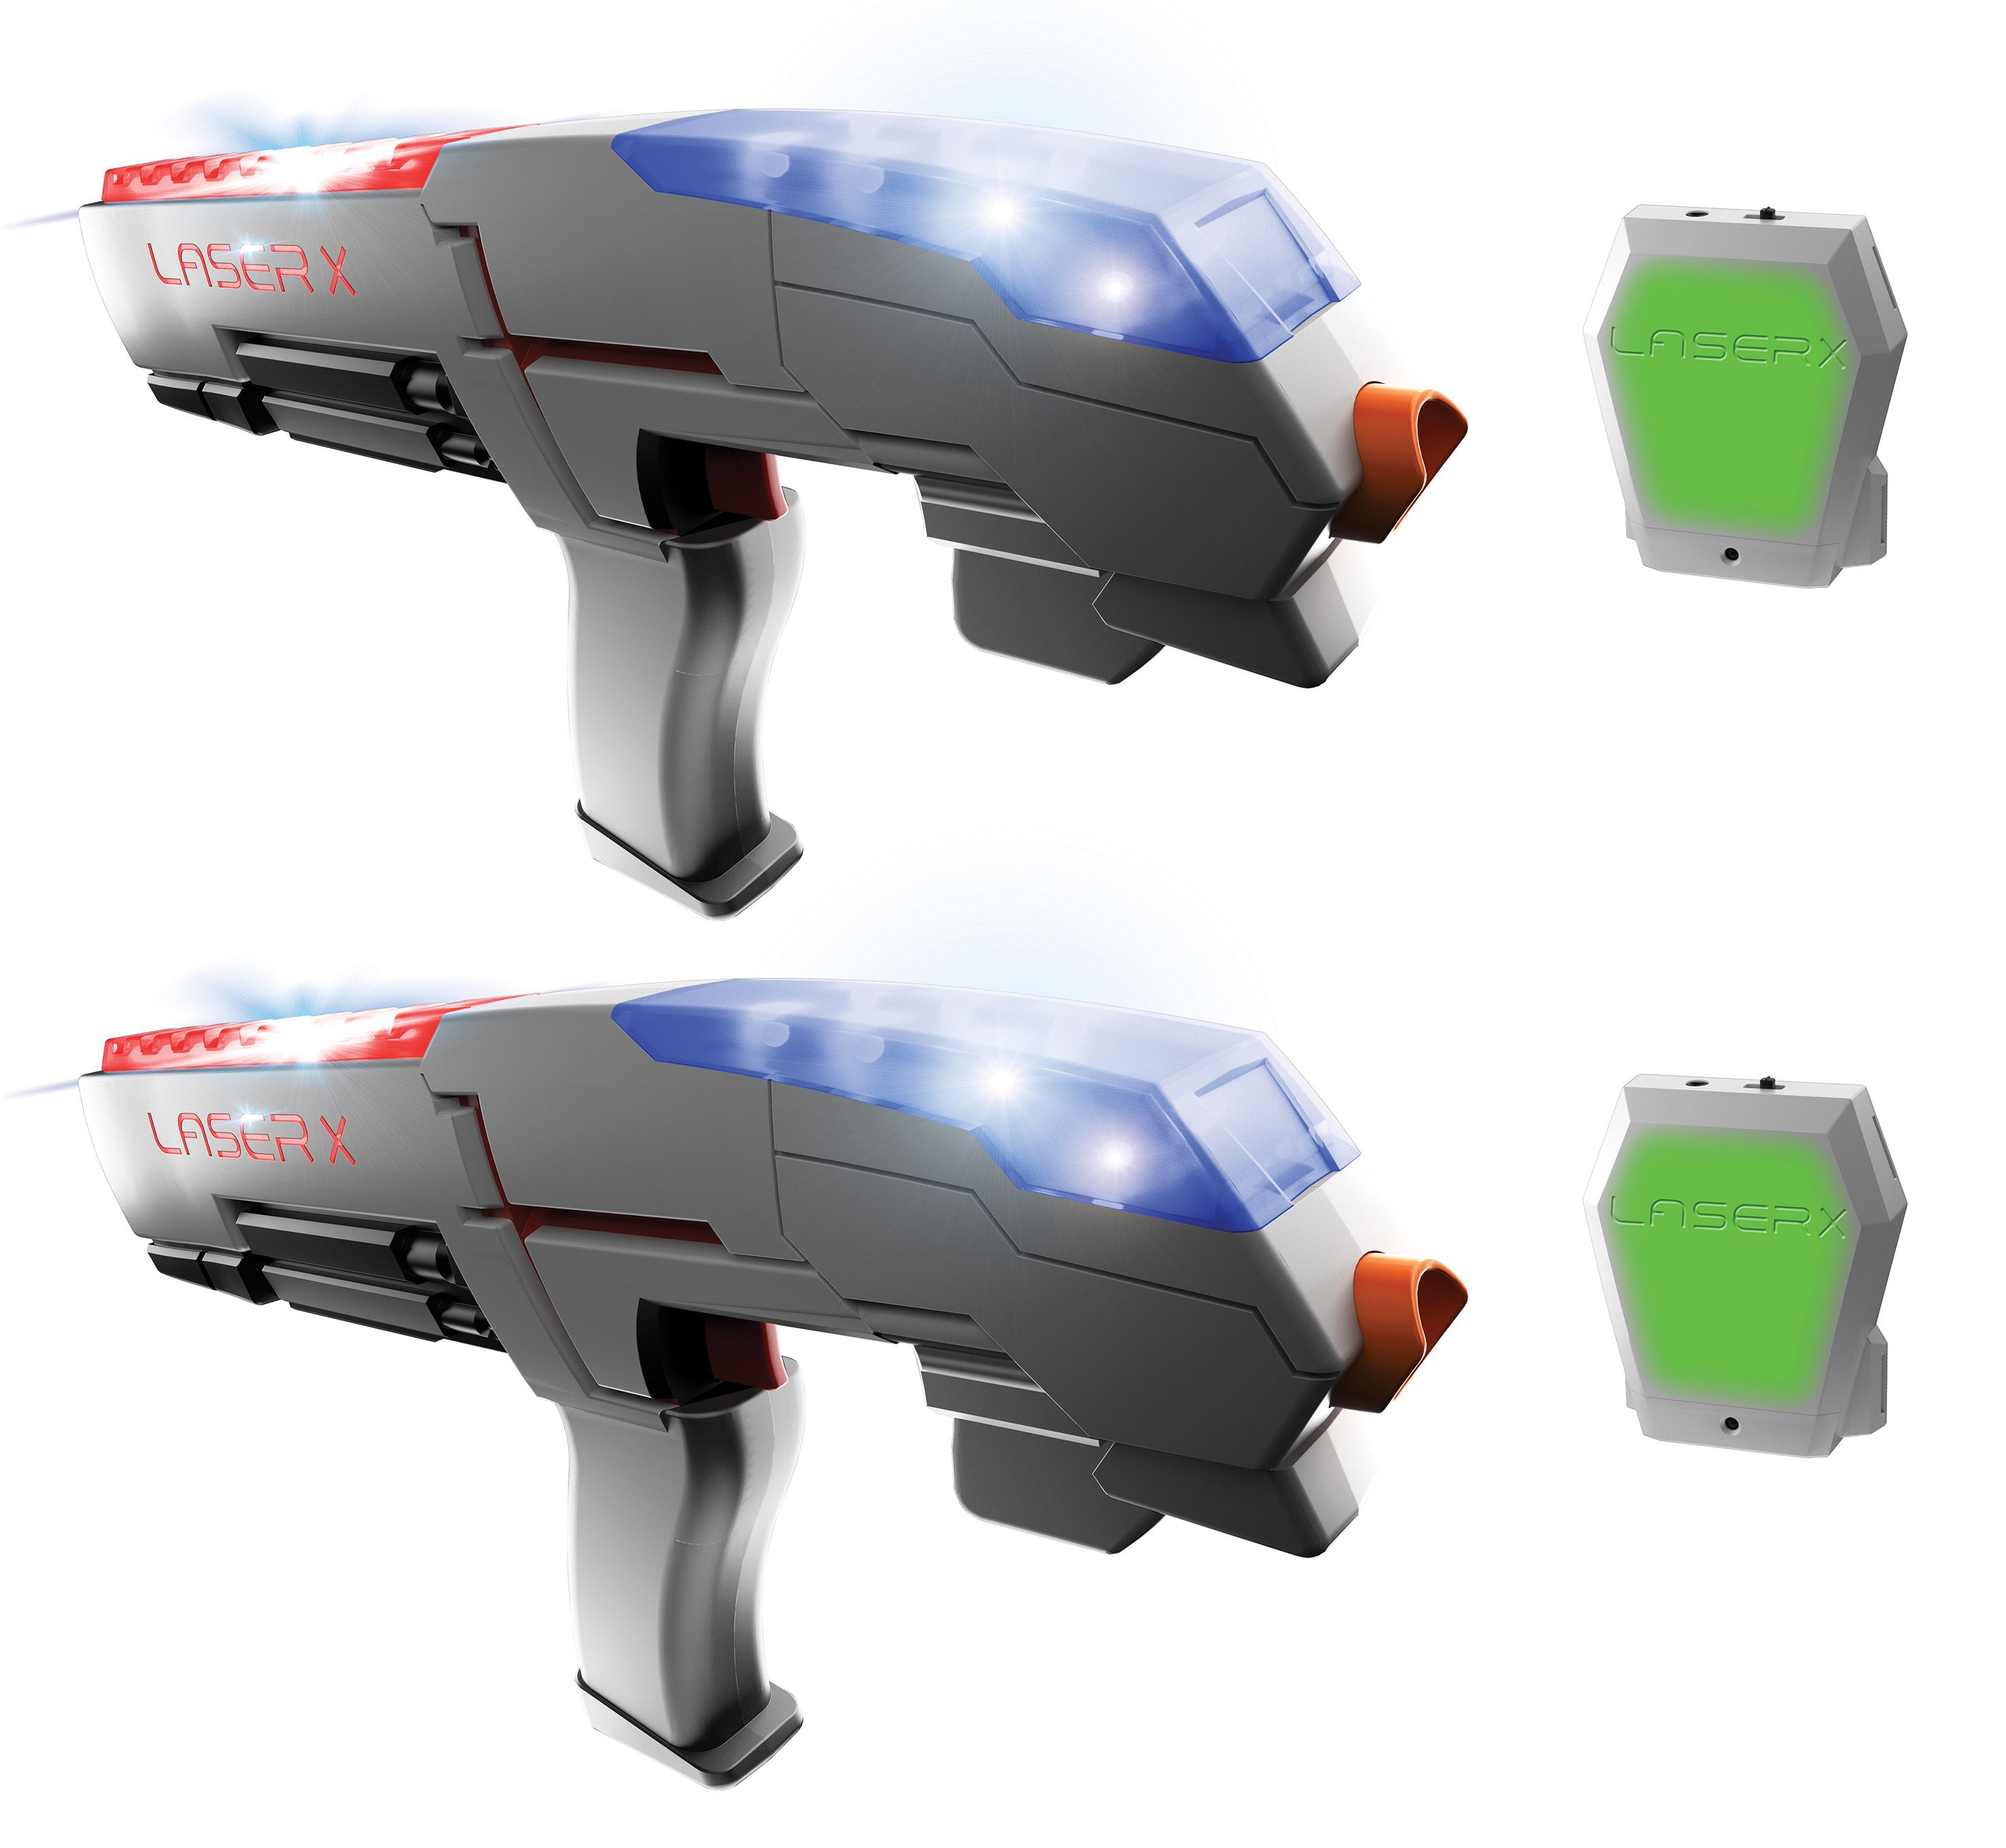 Laser X Laser Tag Double Set Tag Laser Set Toys R Us Canada Toys R Us Toys